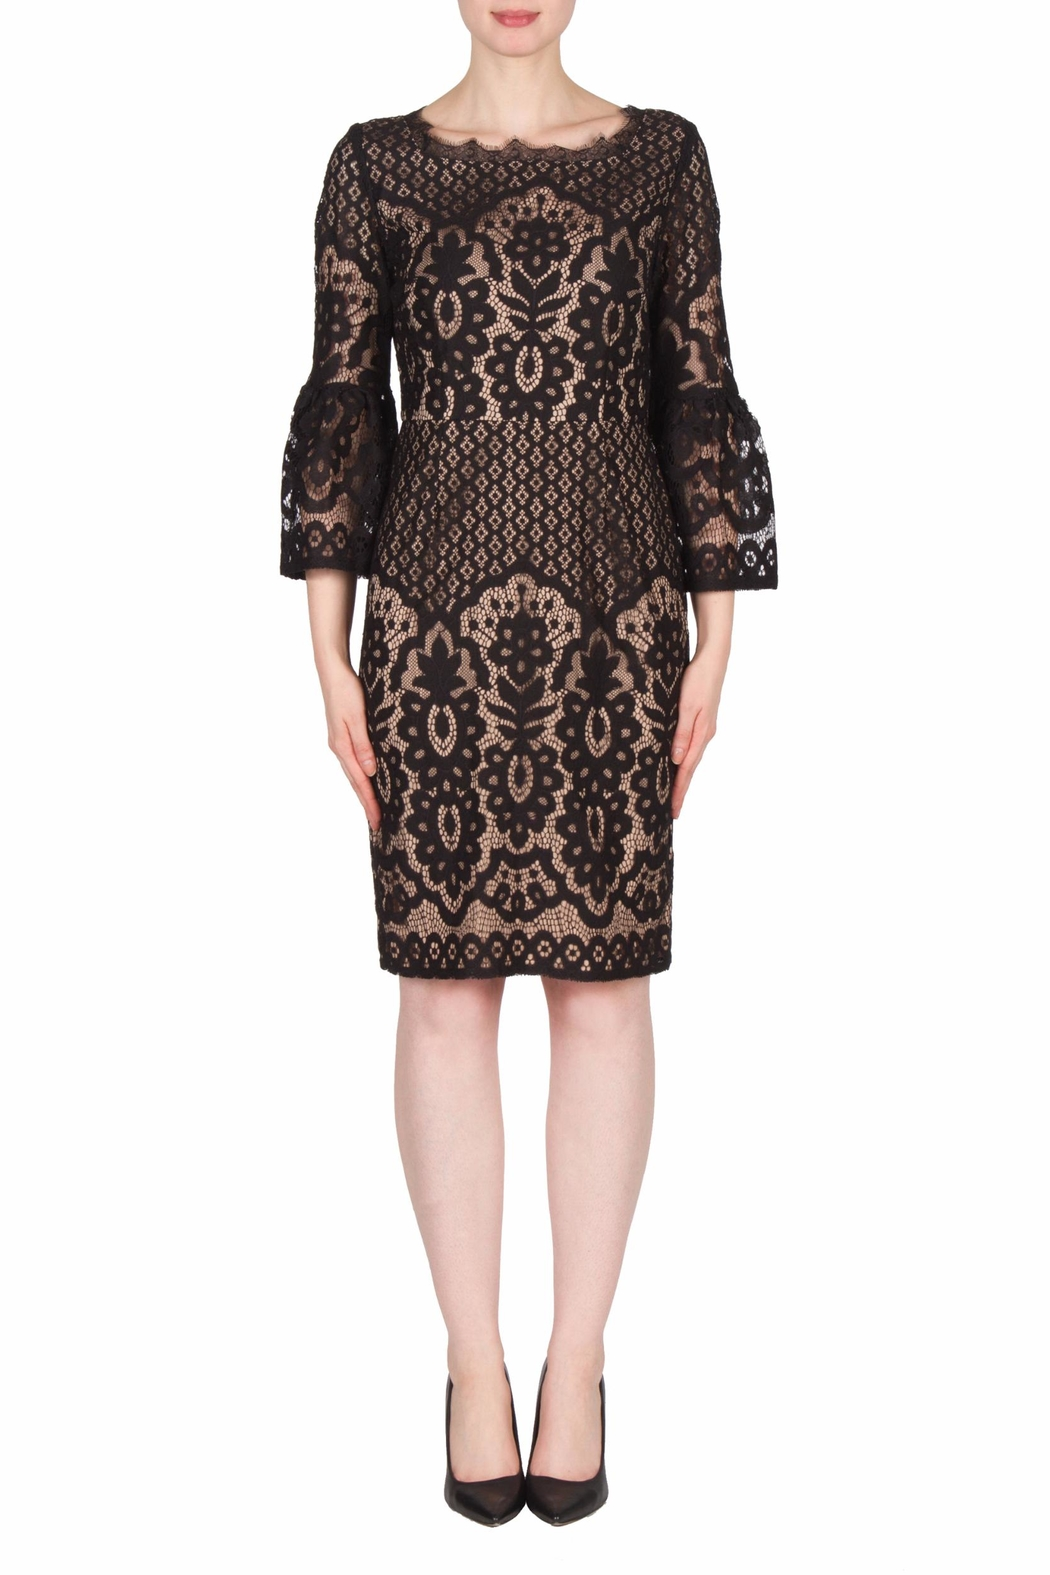 Joseph Ribkoff Black Lace Dress - Main Image